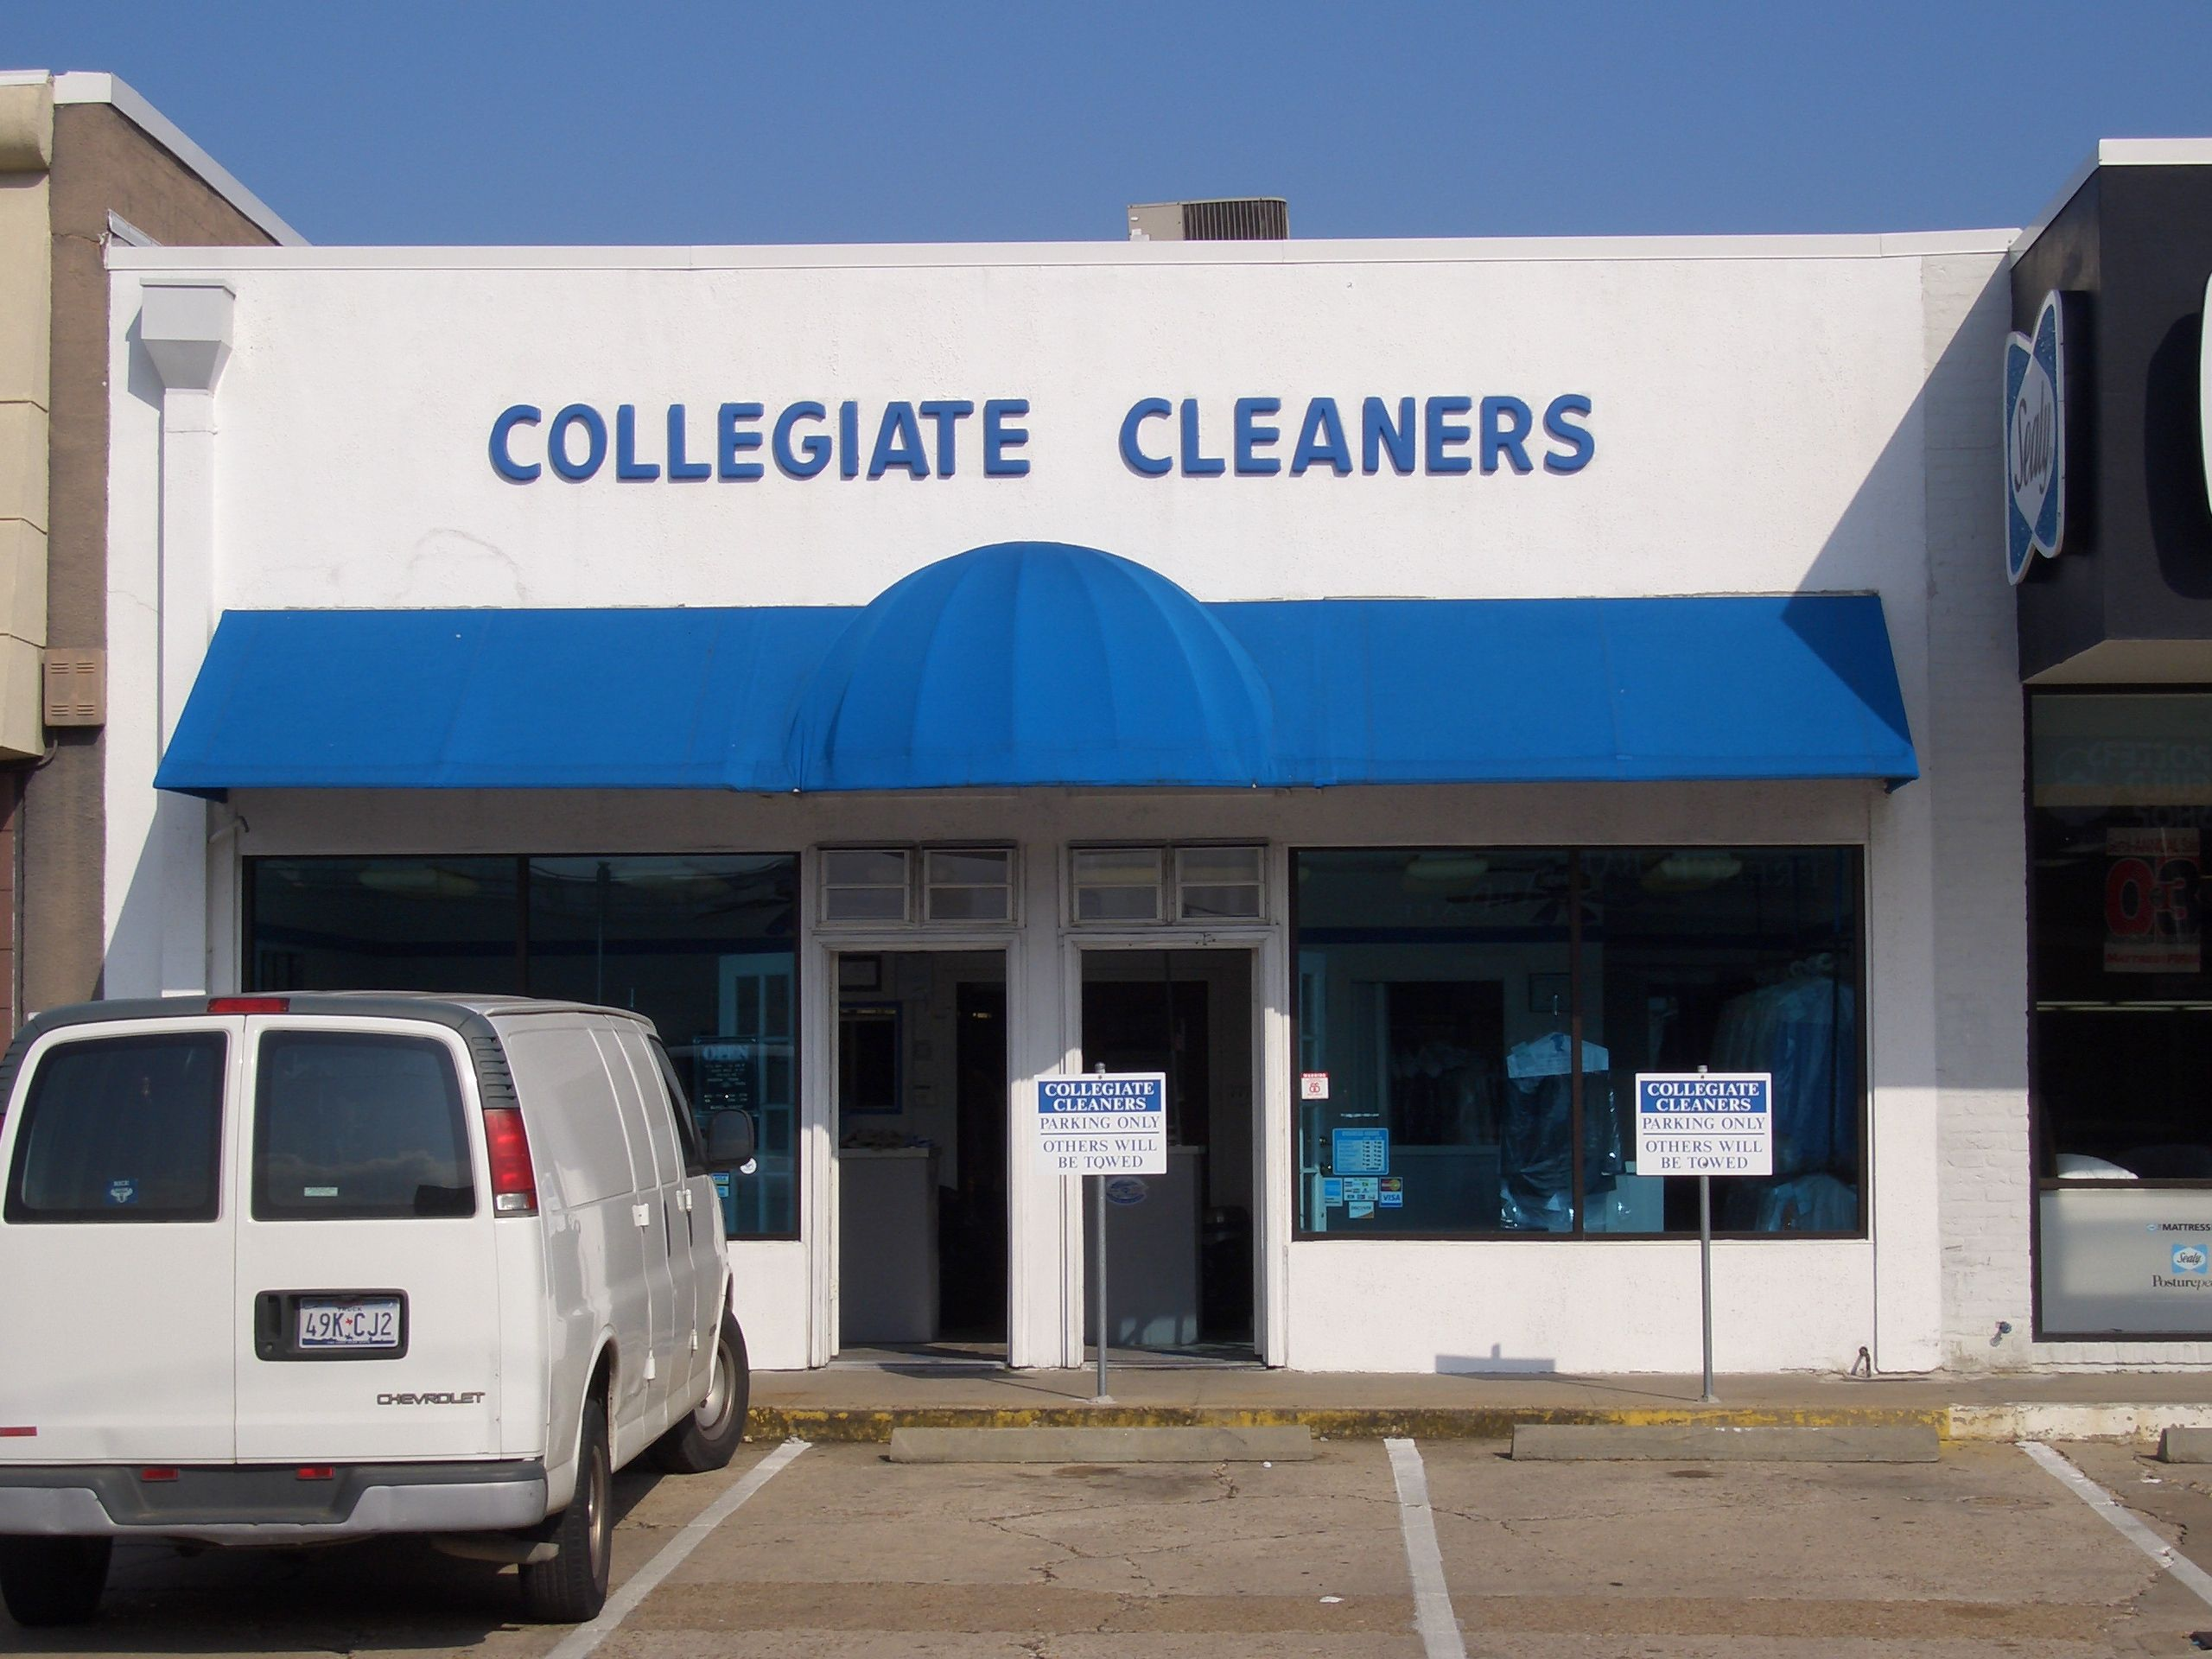 Houston Drycleaning Clothes Formalwear Drycleaners Collegiatecleaners Texas Alterations Shoerepair Shoe Repair Dry Cleaning Cleaners